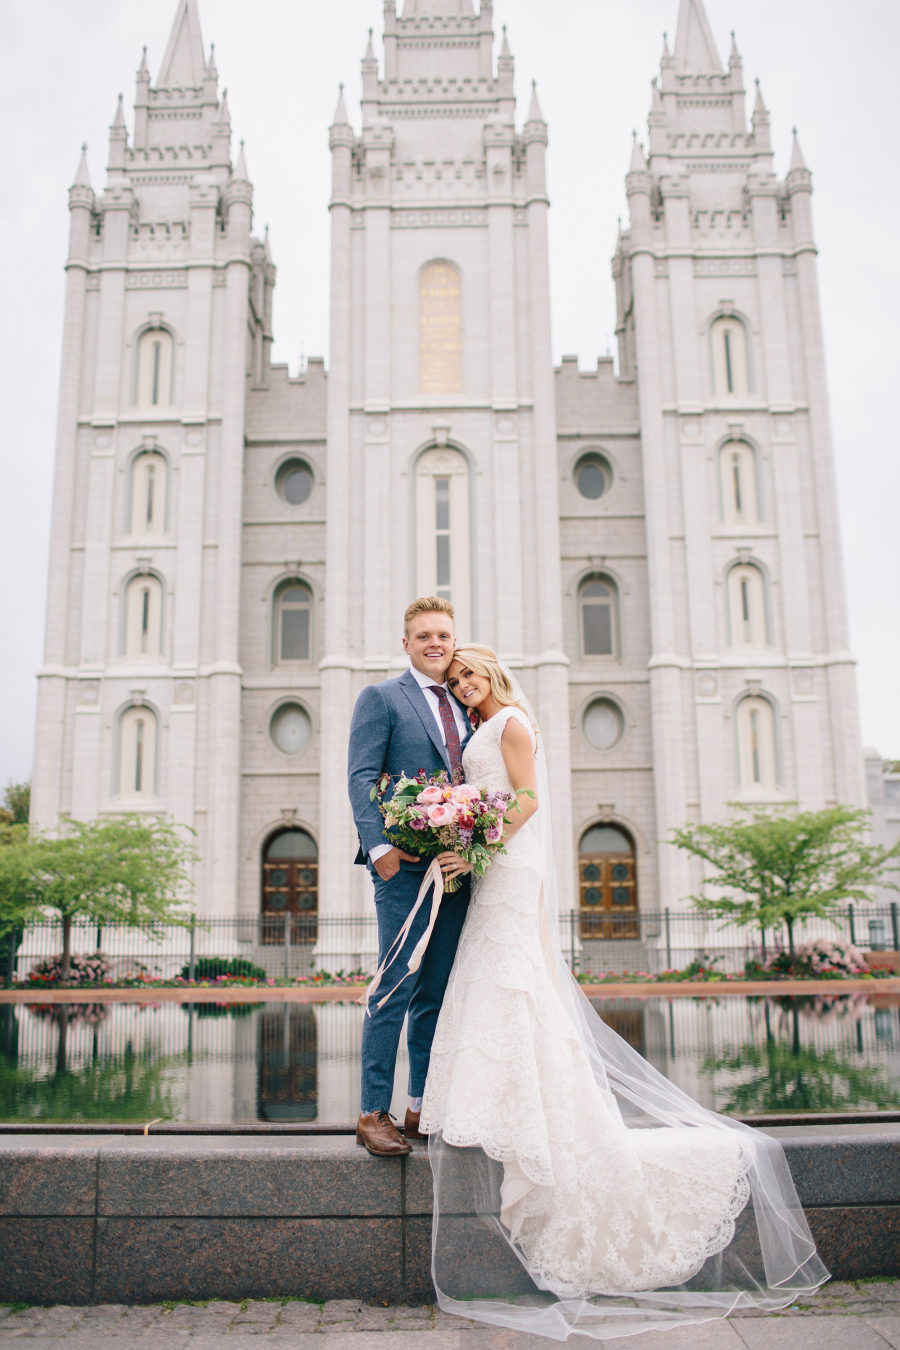 Lindsay Arnold Wedding.Dancing With Stars Pro Lindsay Arnold S Utah Wedding